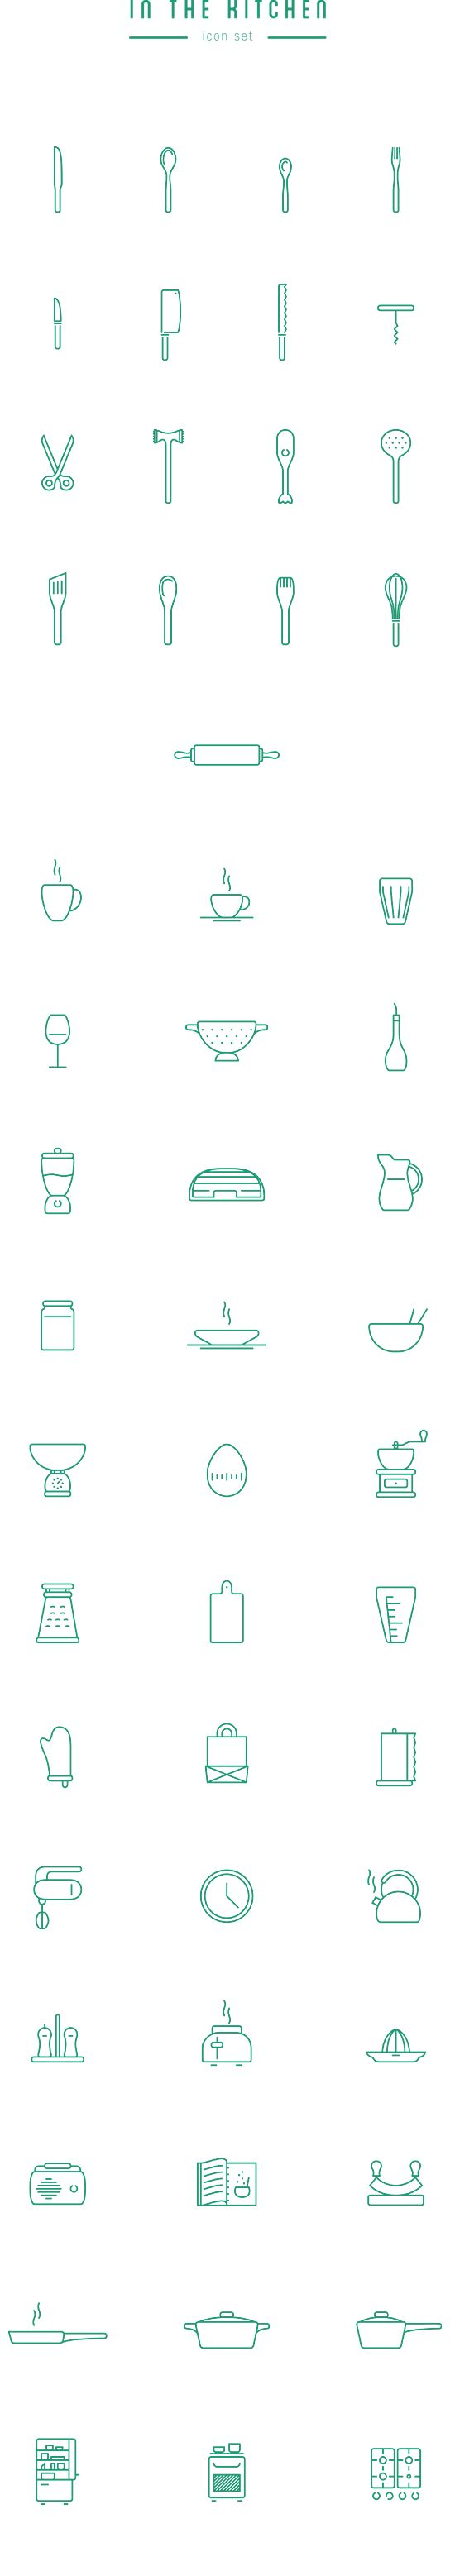 In The Kitchen U2013 Free Icon Set By Wojciech Zasina, Via Behance Part 84